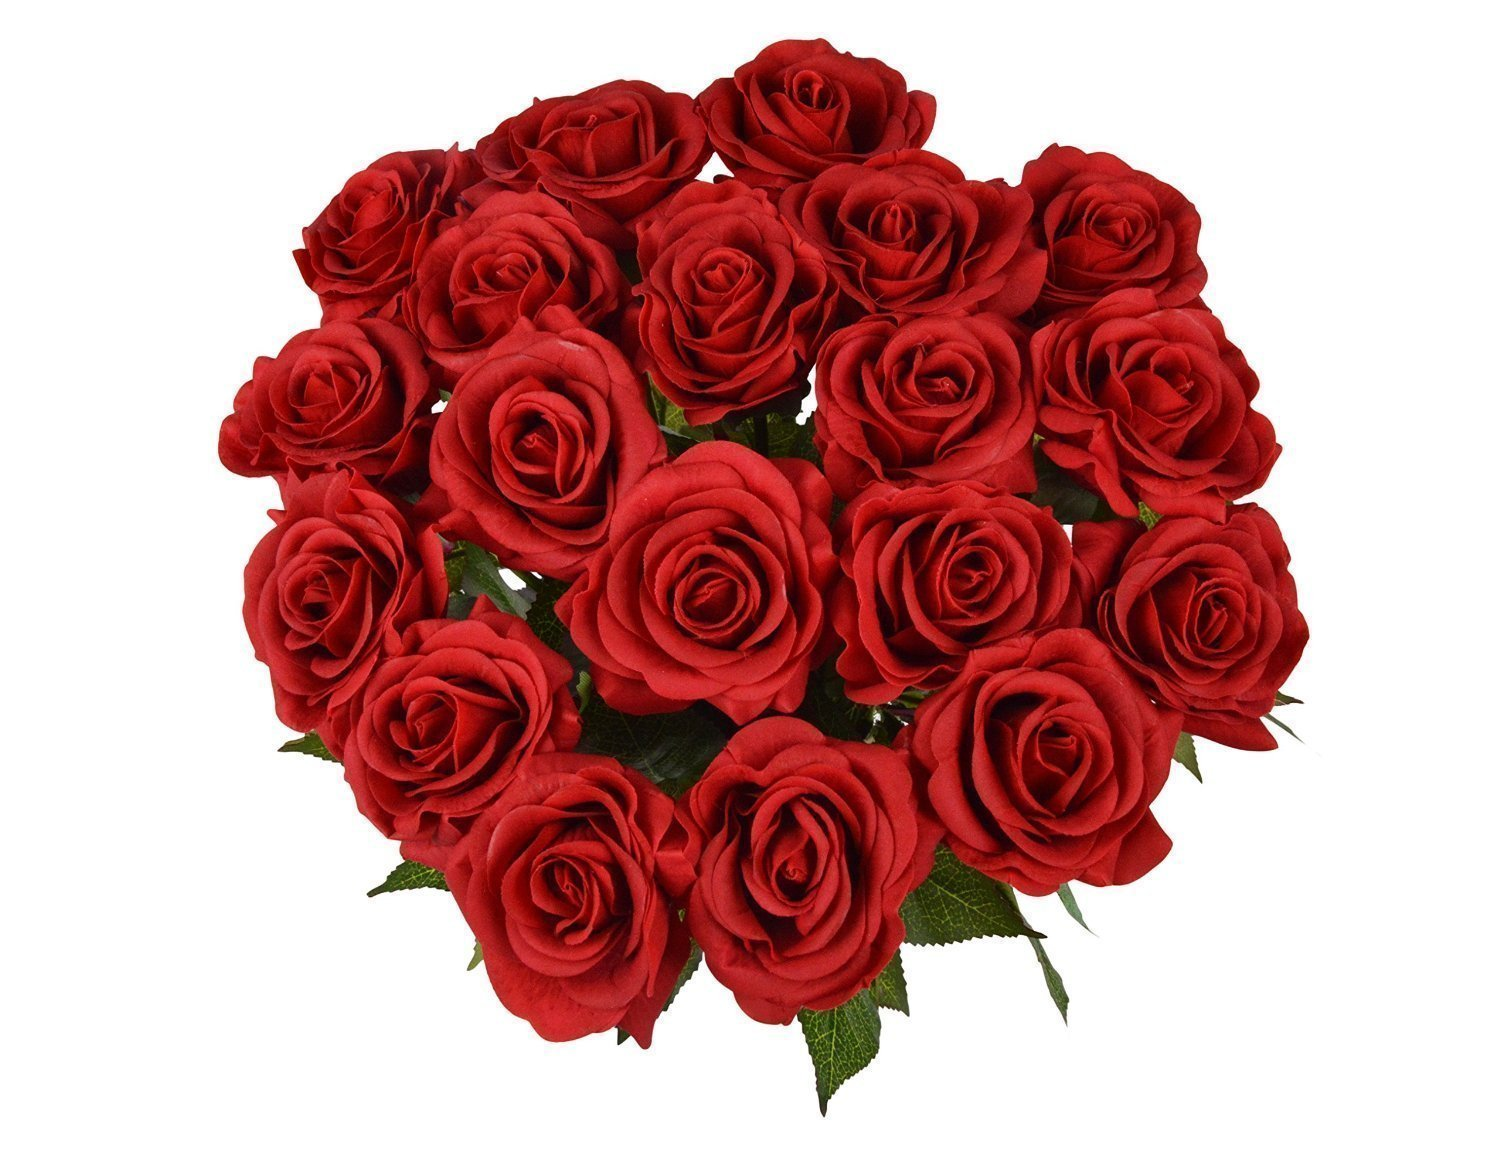 10-Pcs-Real-Touch-Silk-Artificial-Rose-Flowers-Silk-Gluing-PU-Fake-Flower-Home-Decorations-for-Wedding-Party-or-Birthday-Garden-Bridal-Bouquet-Flower-Saint-Valentines-Day-Gifts-Party-Event